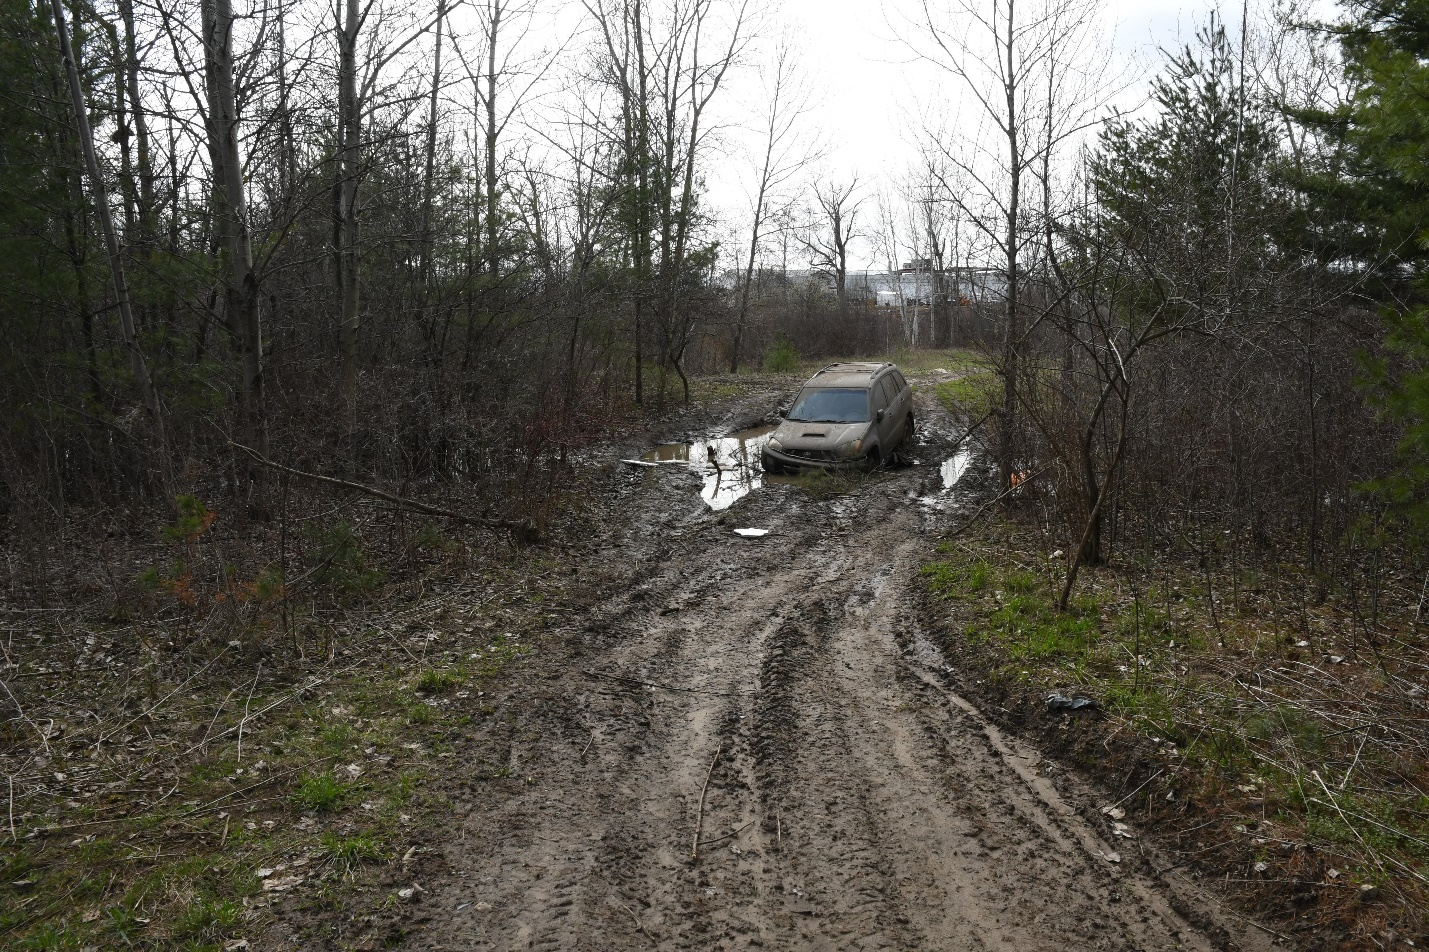 Figure 1 - The wooded area where a black Toyota RAV4 was found partially submerged in the mud.